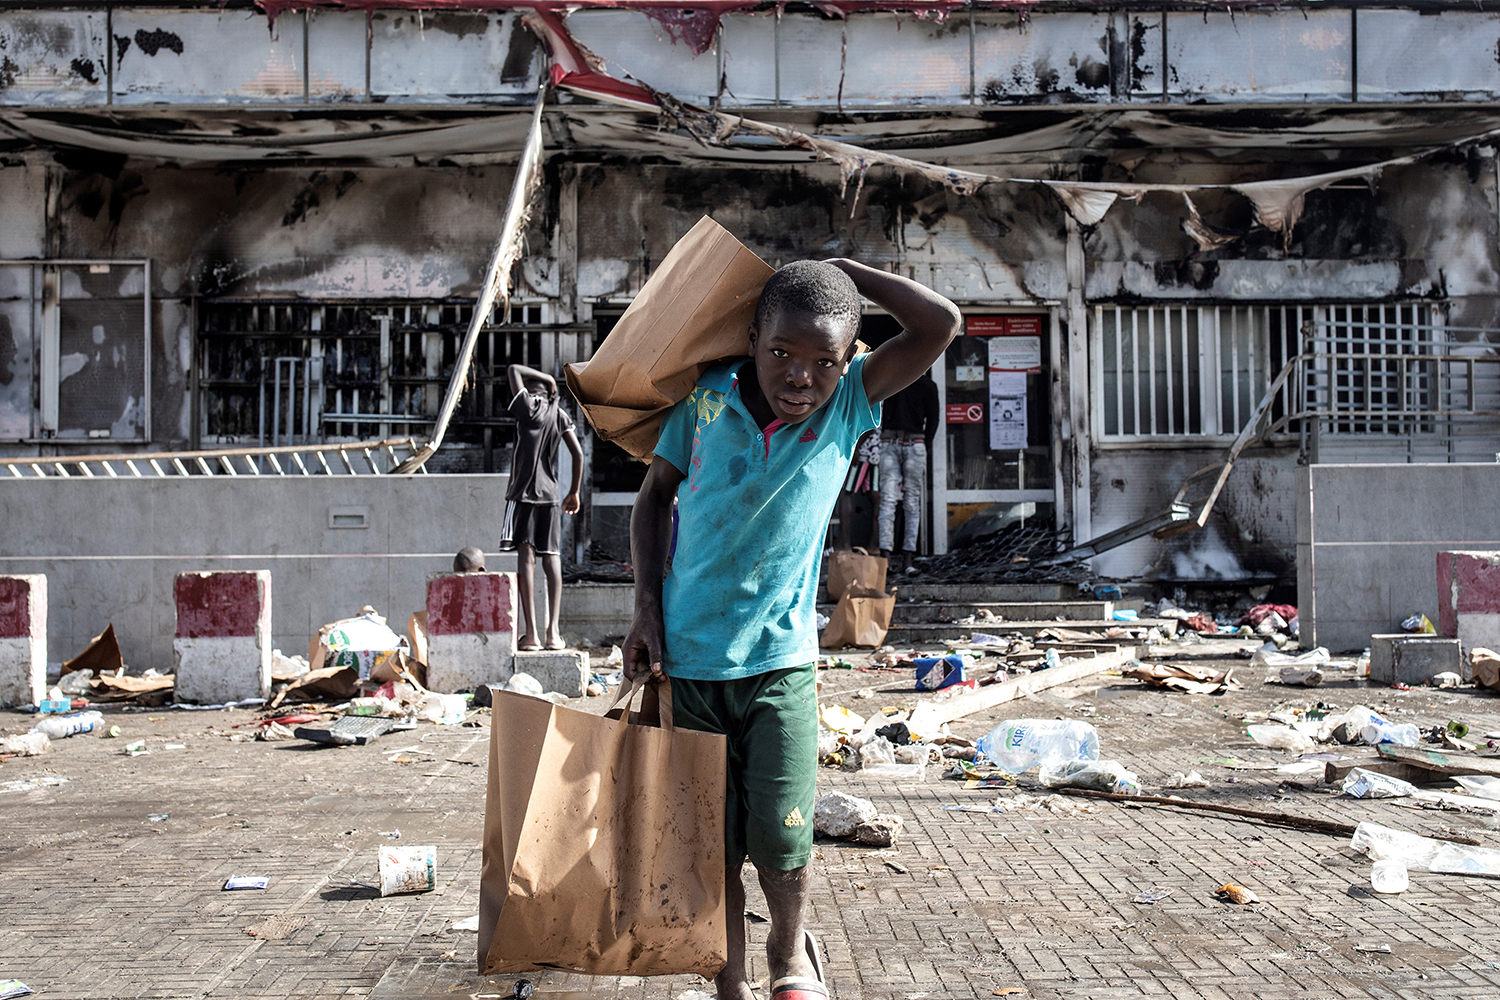 A young boy holds grocery bags as he walks away from a burnt-down and looted Auchan supermarket in Dakar, Senegal, on March 6. The fire took place amid protests following the arrest of opposition leader Ousmane Sonko on rape charges. JOHN WESSELS/AFP via Getty Images